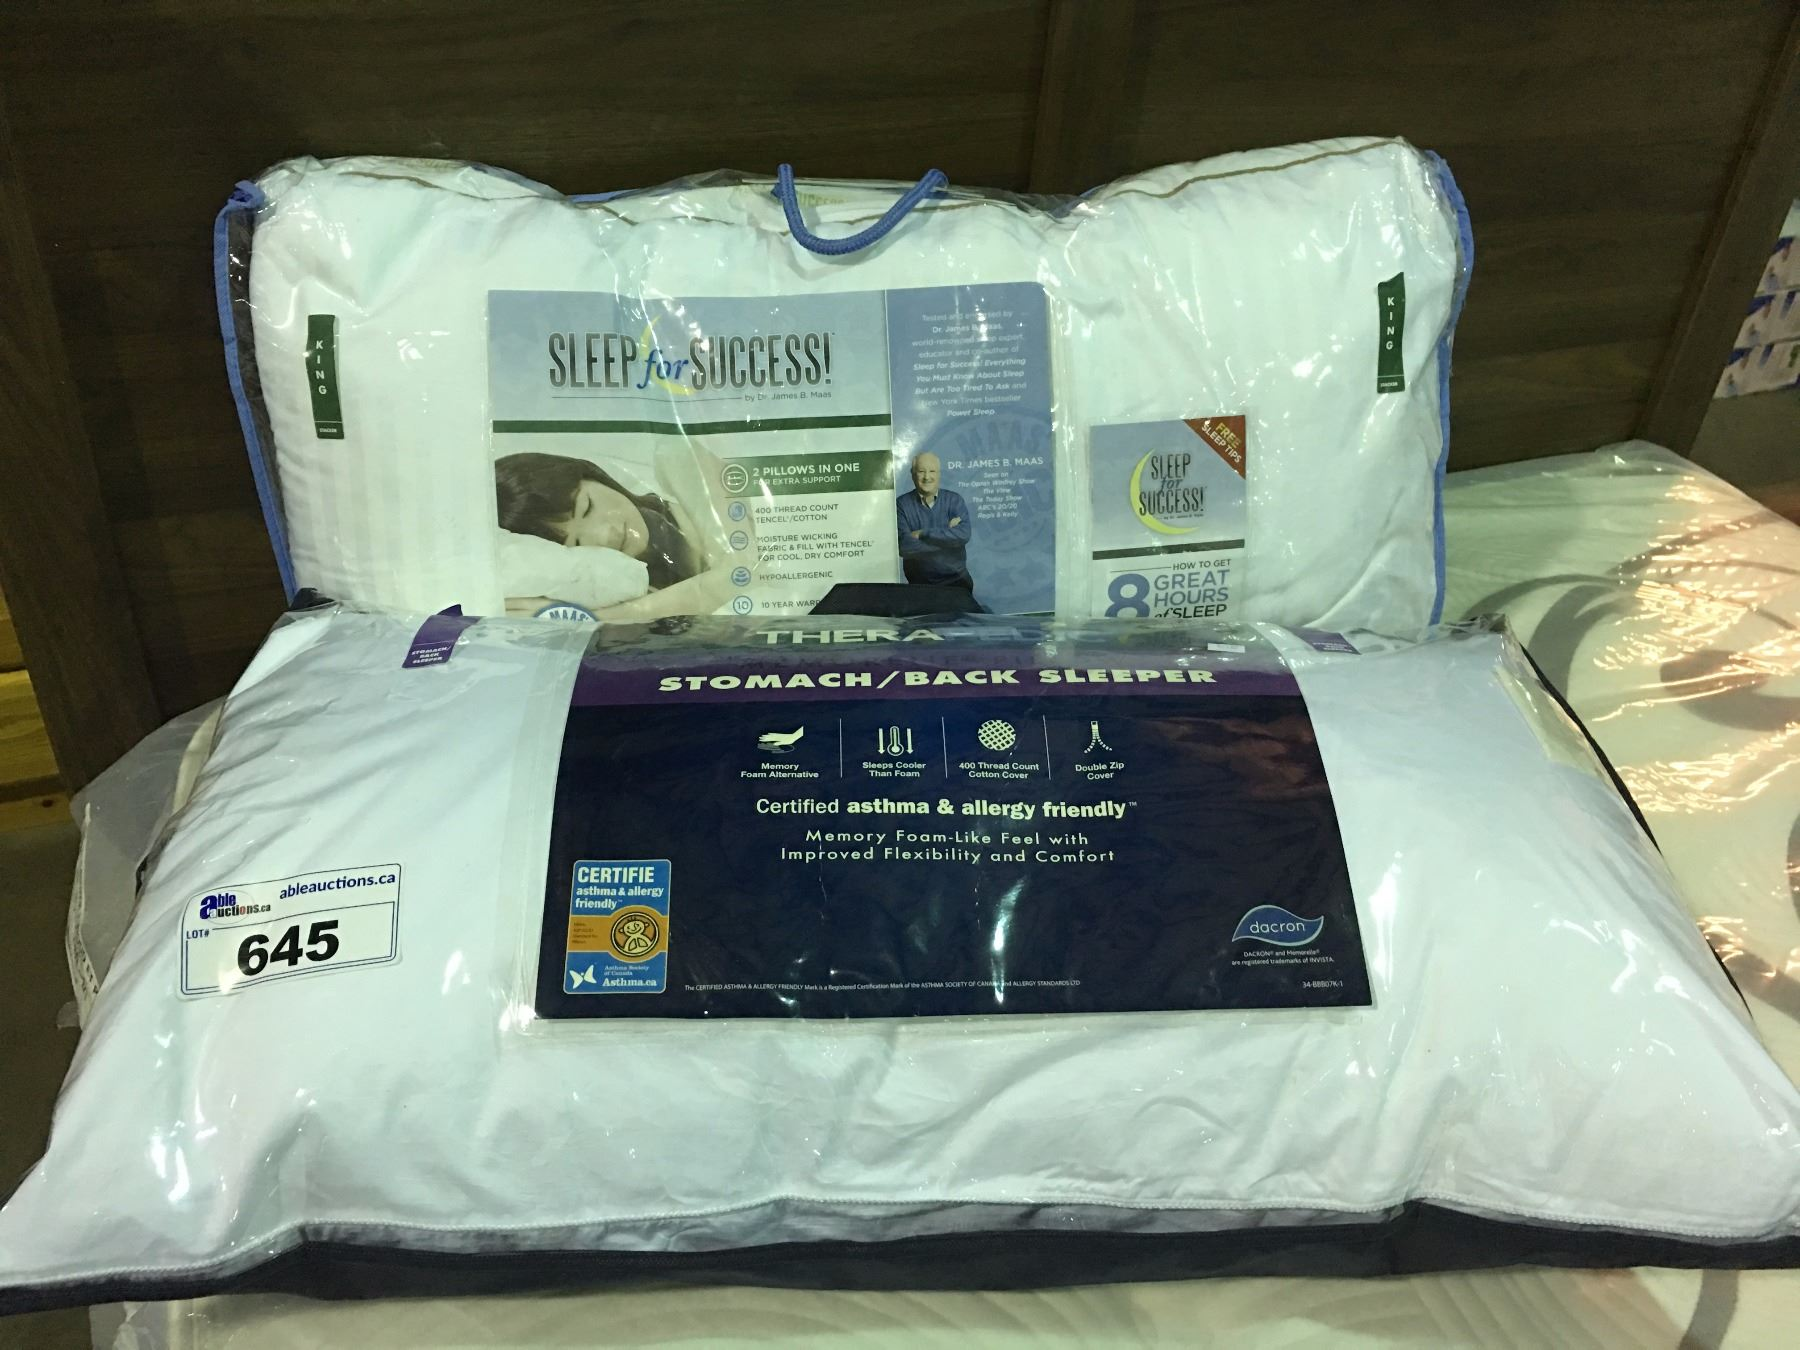 2 King Sized Pillows Therapedic Sleep For Success